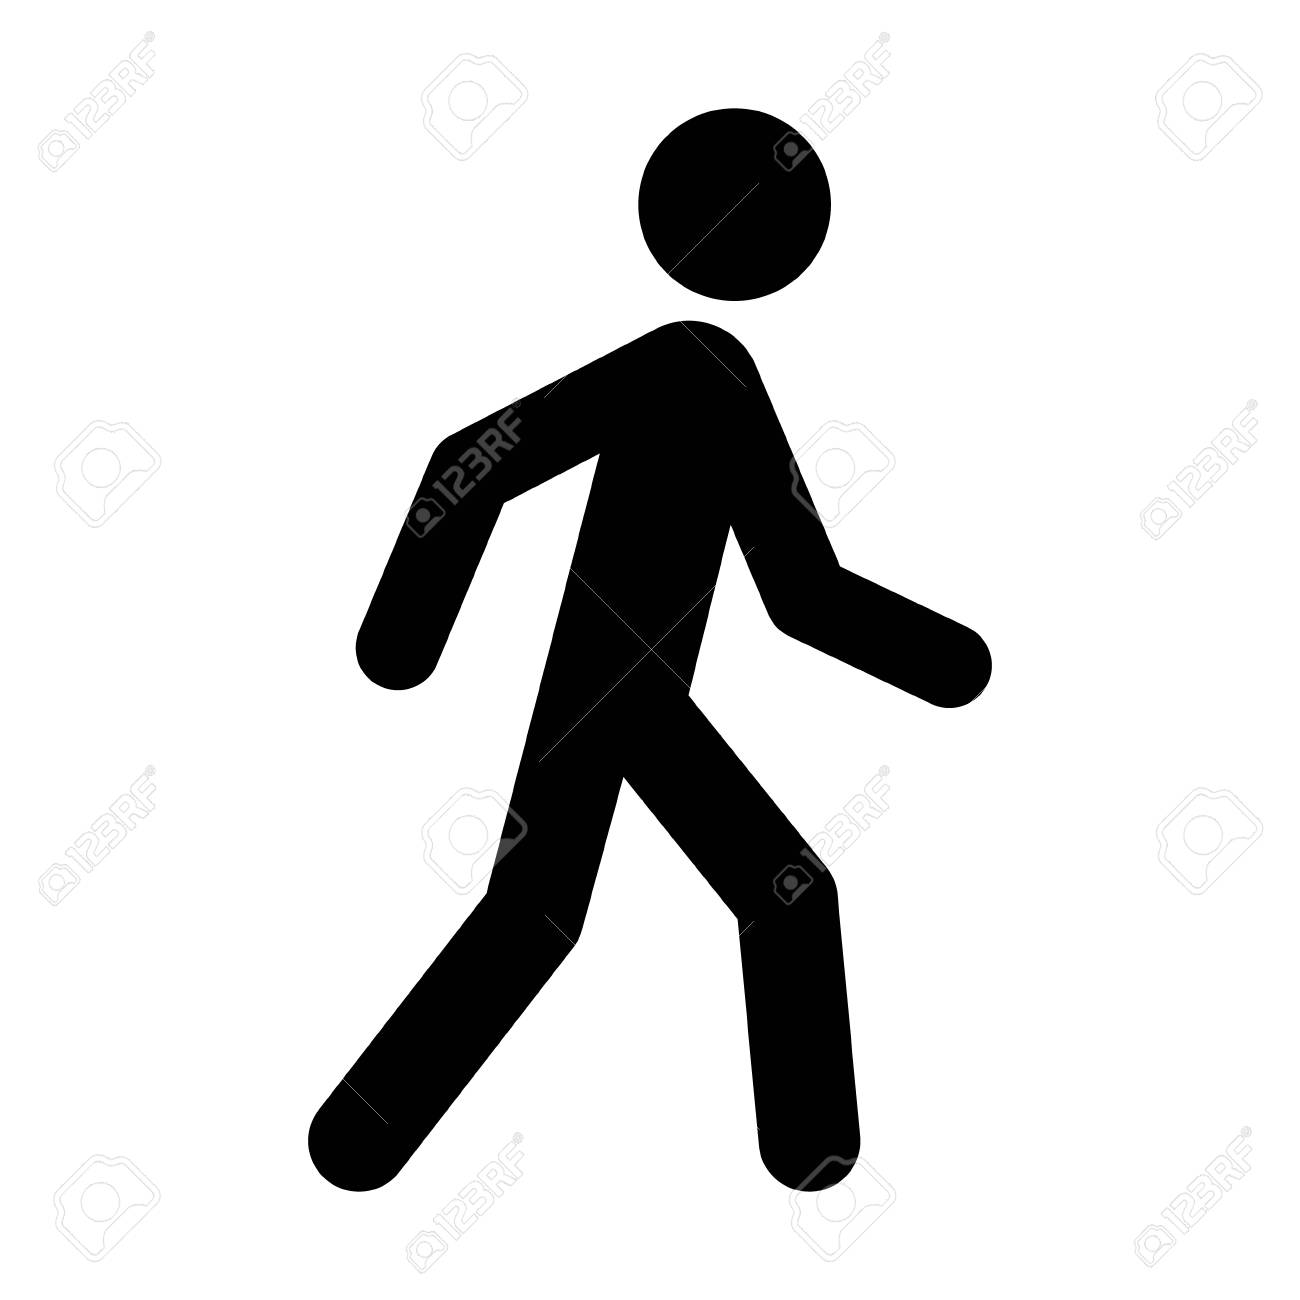 a person walking or walk sign flat vector icon for apps and websites royalty free cliparts vectors and stock illustration image 113393191 a person walking or walk sign flat vector icon for apps and websites